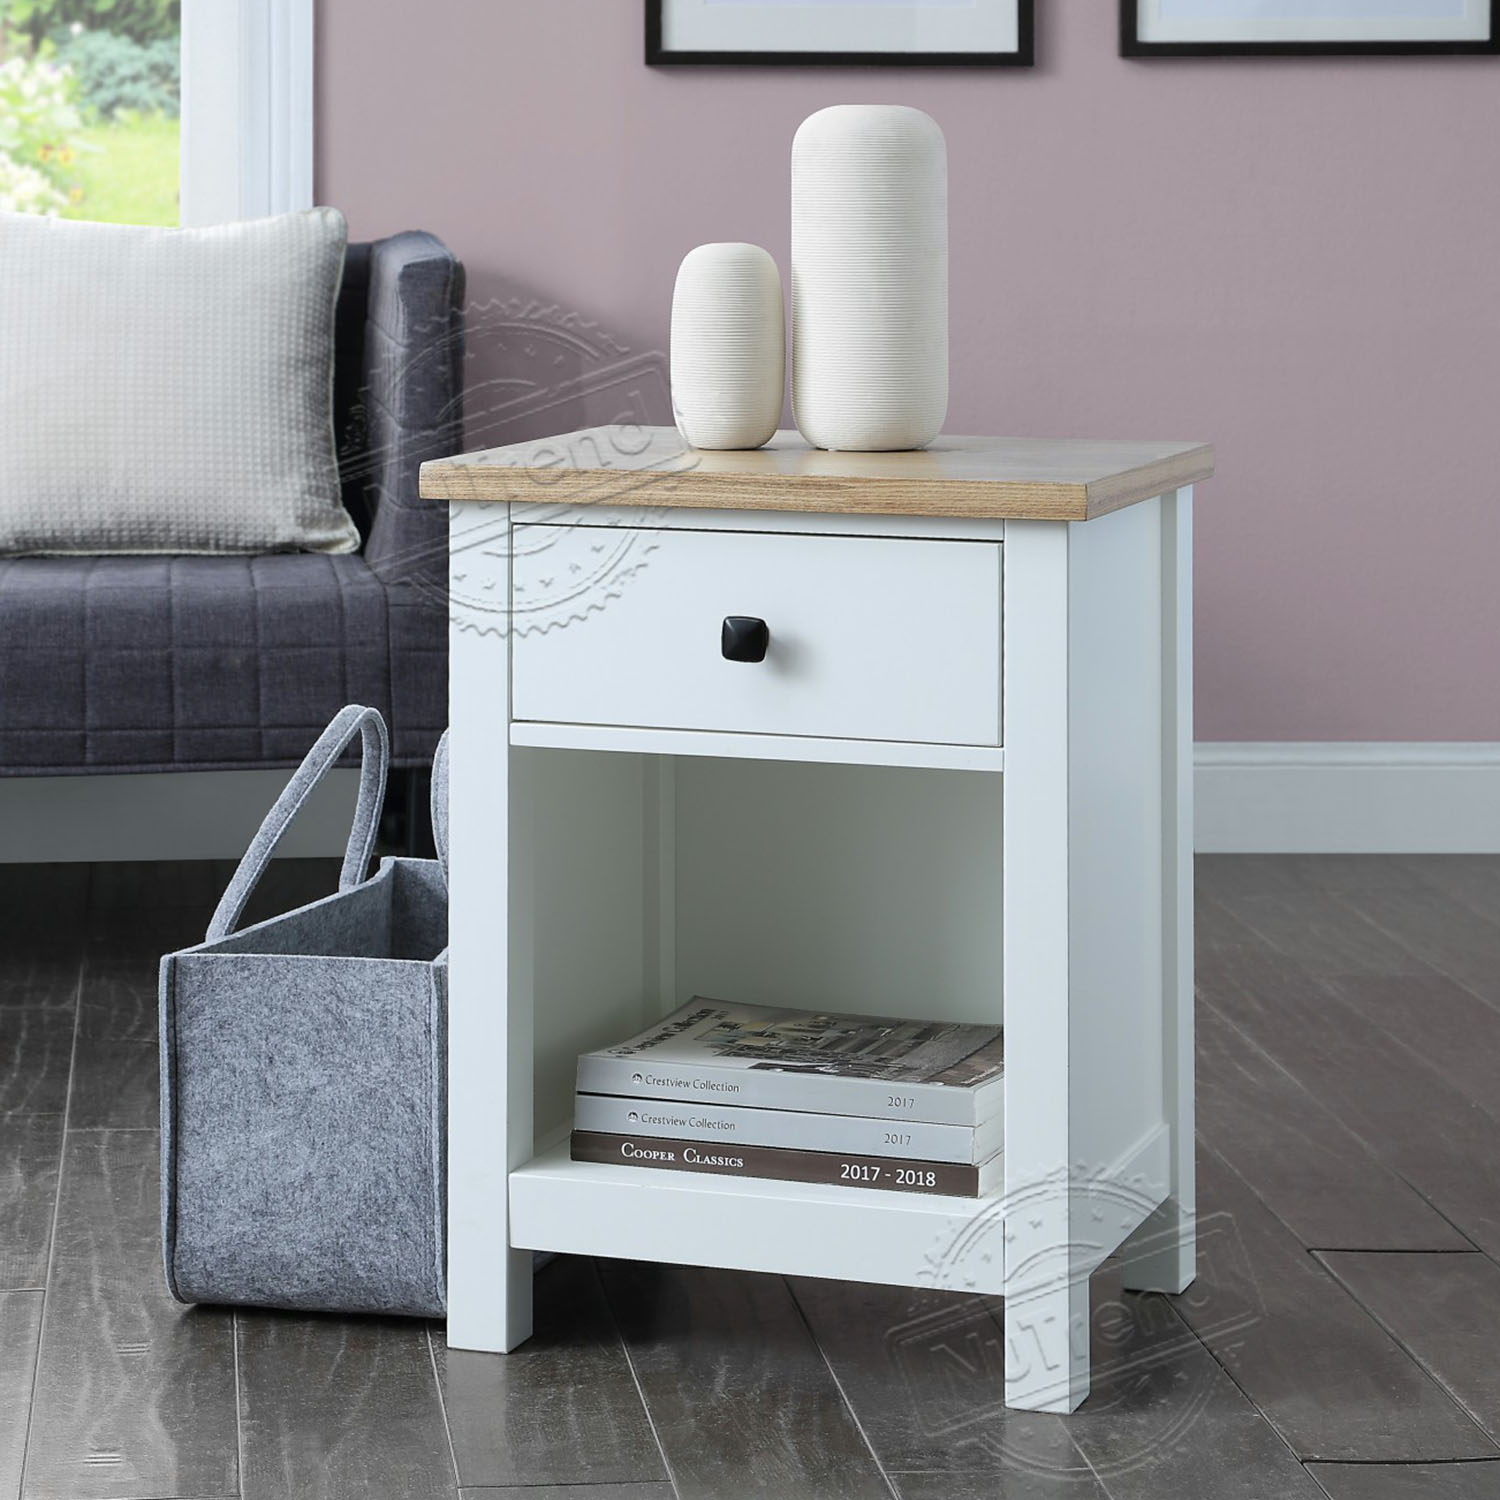 Unique Modern Accent Sofa Table For Living Room 203367